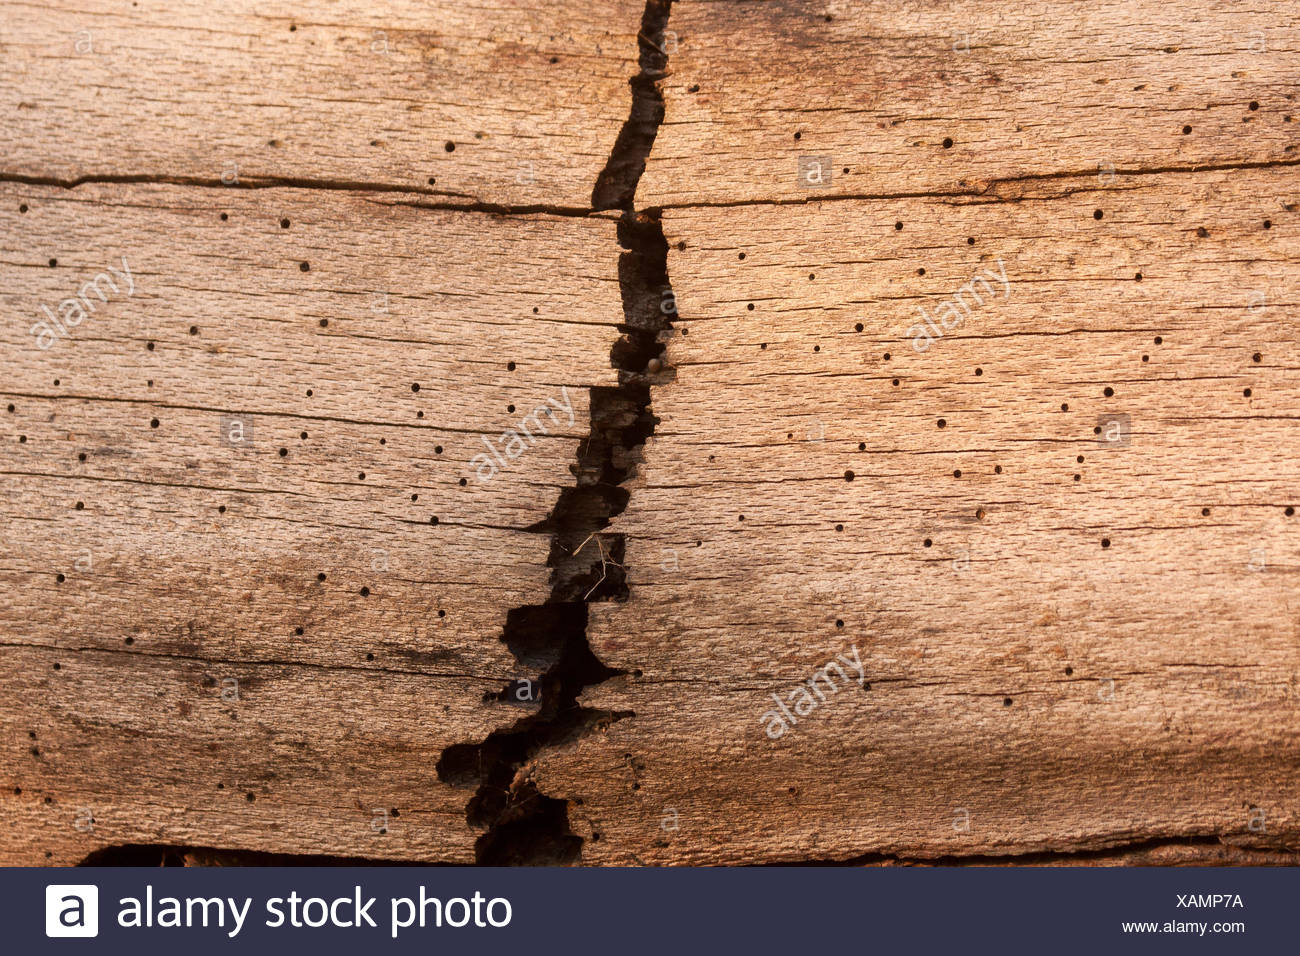 lazy, vein, grained, forest, nature, old, wood, lazy, vein, holes, rotten, - Stock Image